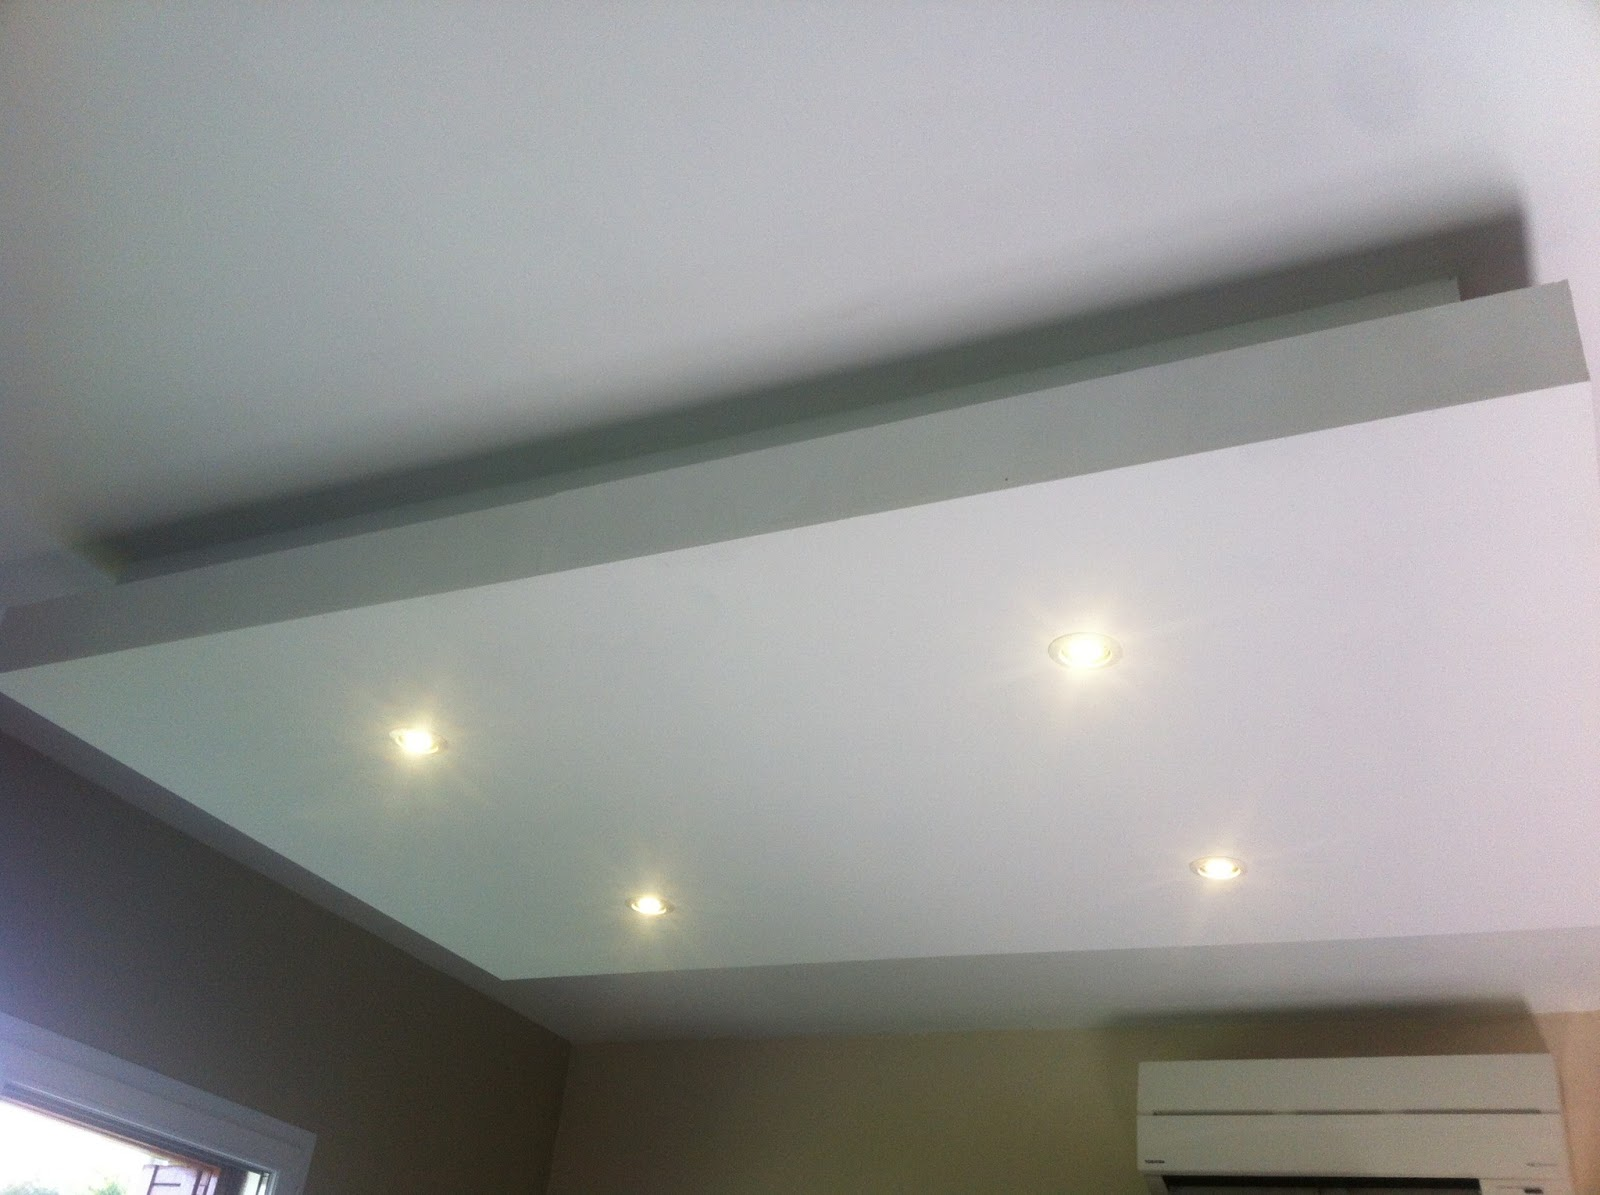 Eclairage plafond suspendu id es de for Plafond suspente